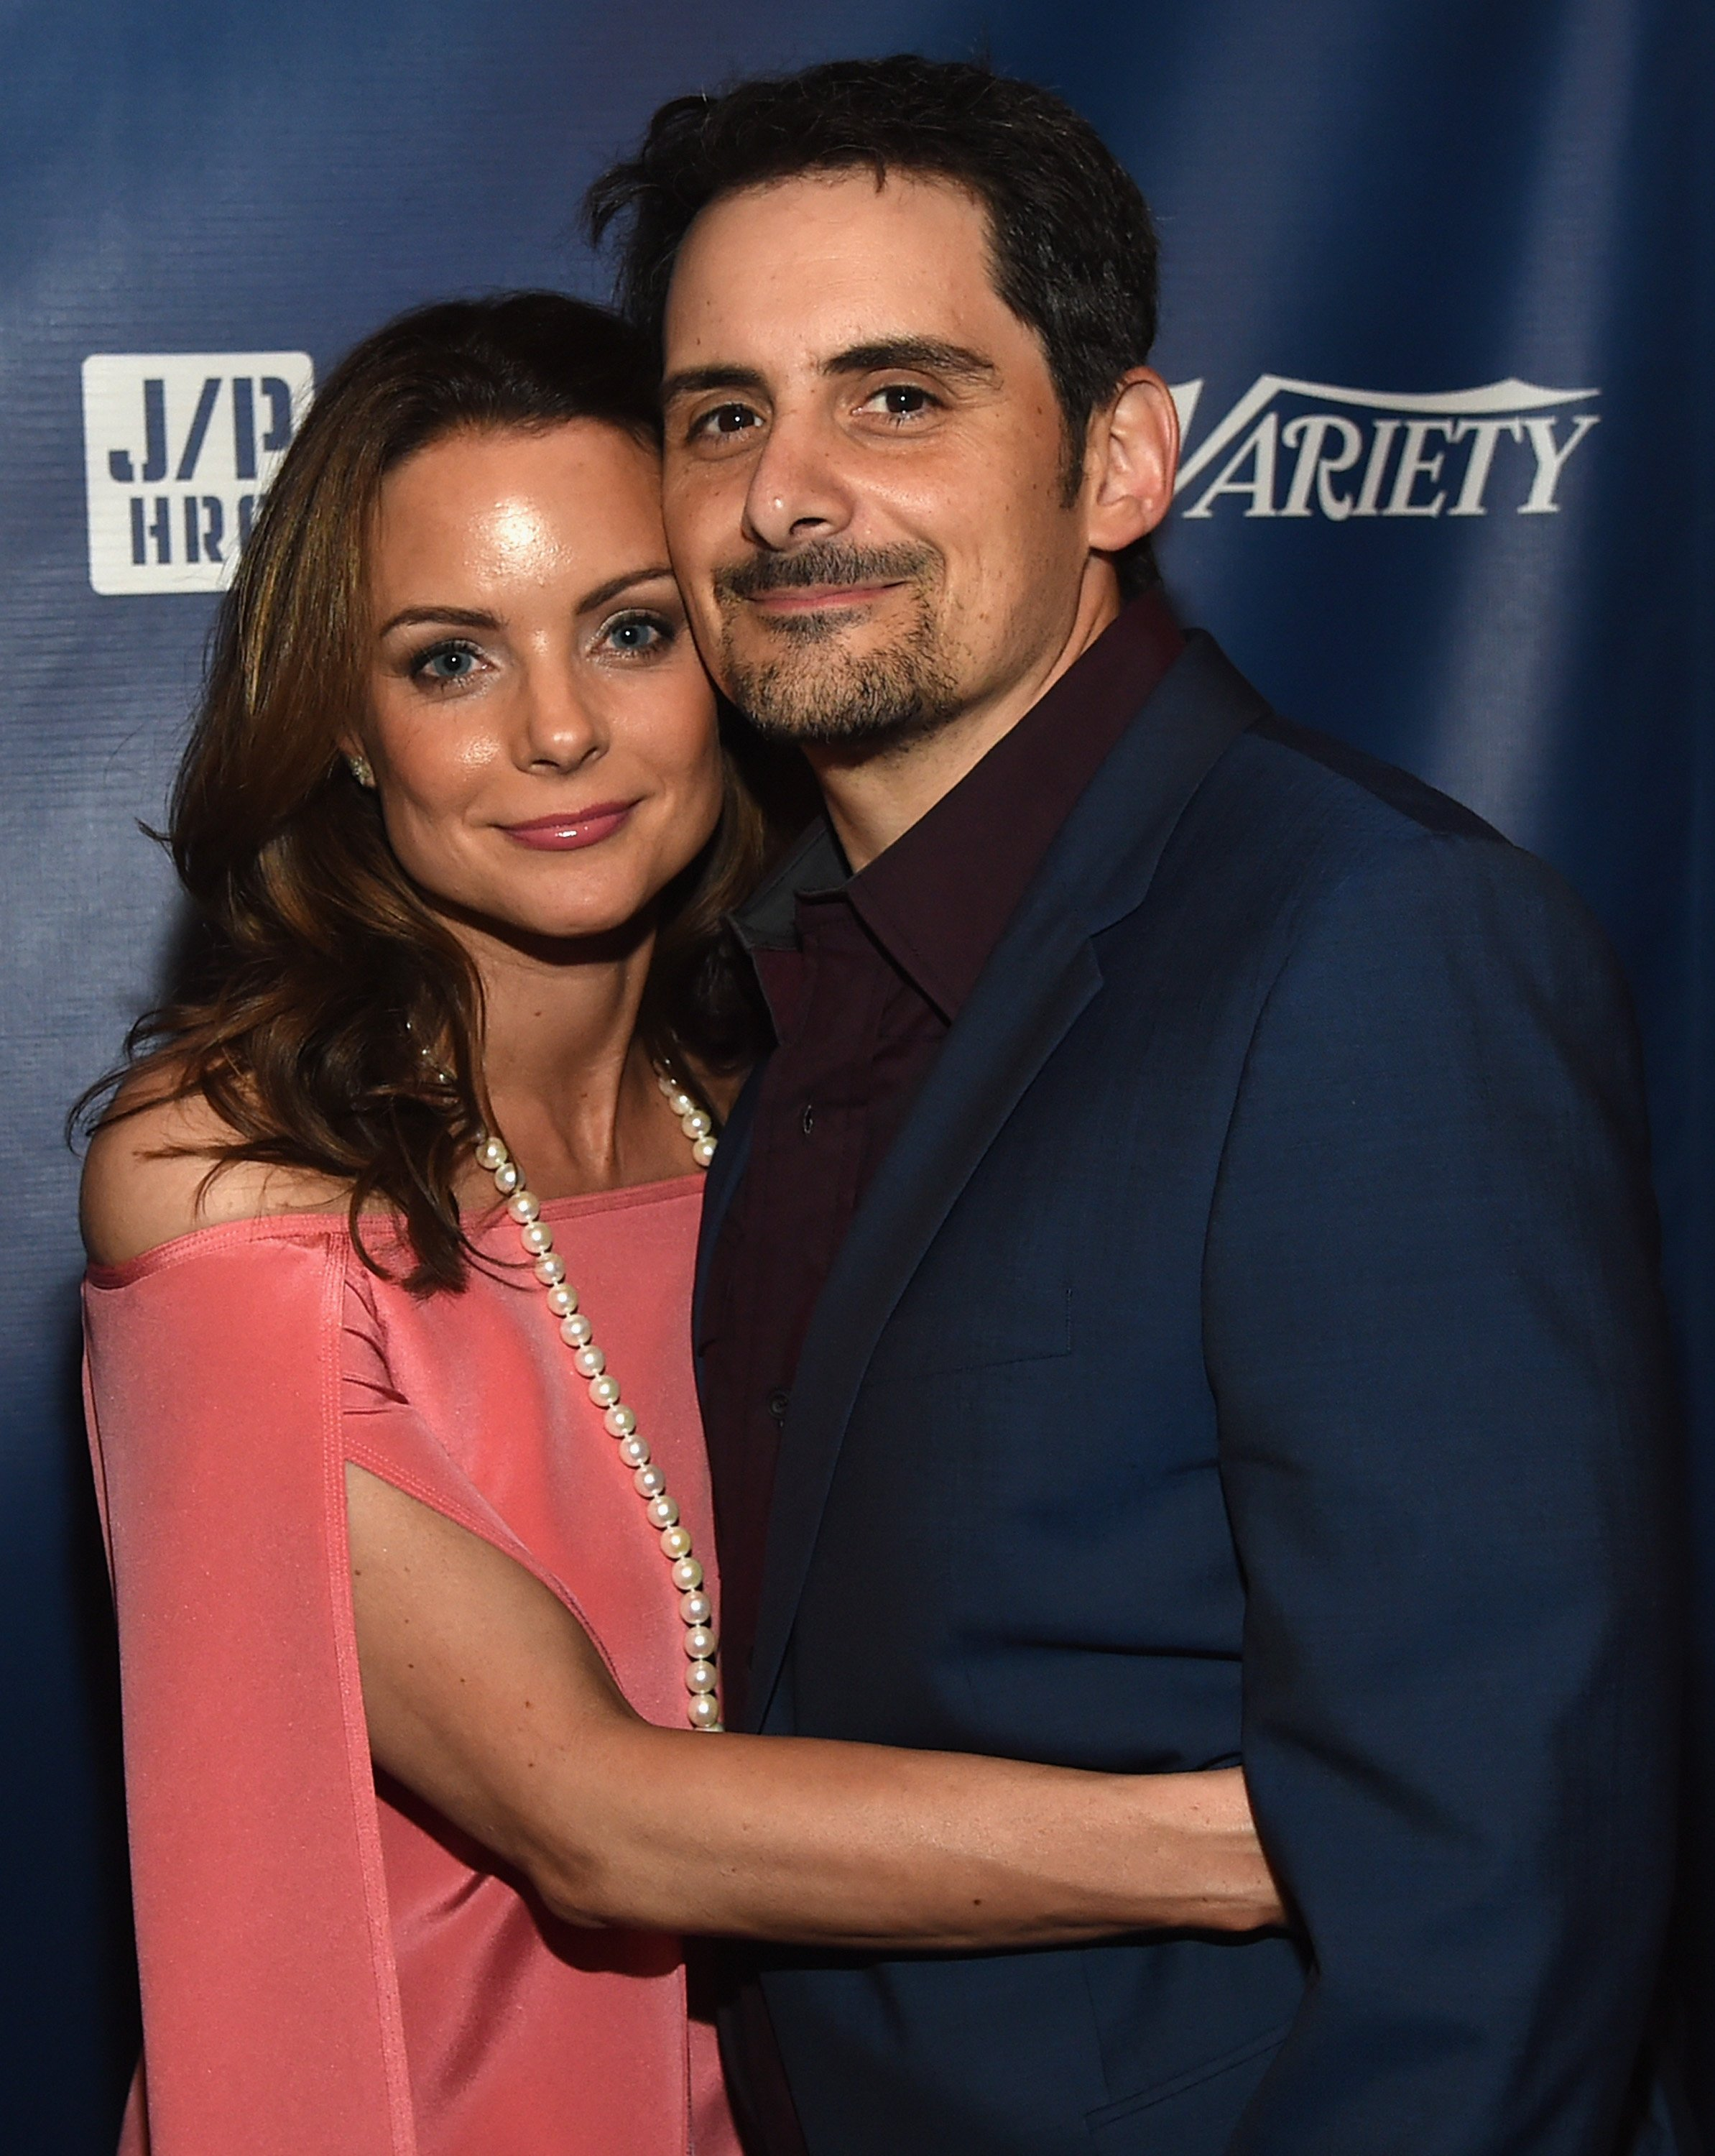 Kimberly Williams-Paisley and Brad Paisley attend the 1st Annual Nashville Shines for Haiti concert at the Arndt Estate on April 26, 2016 in Nashville, Tennessee | Photo: Getty Images